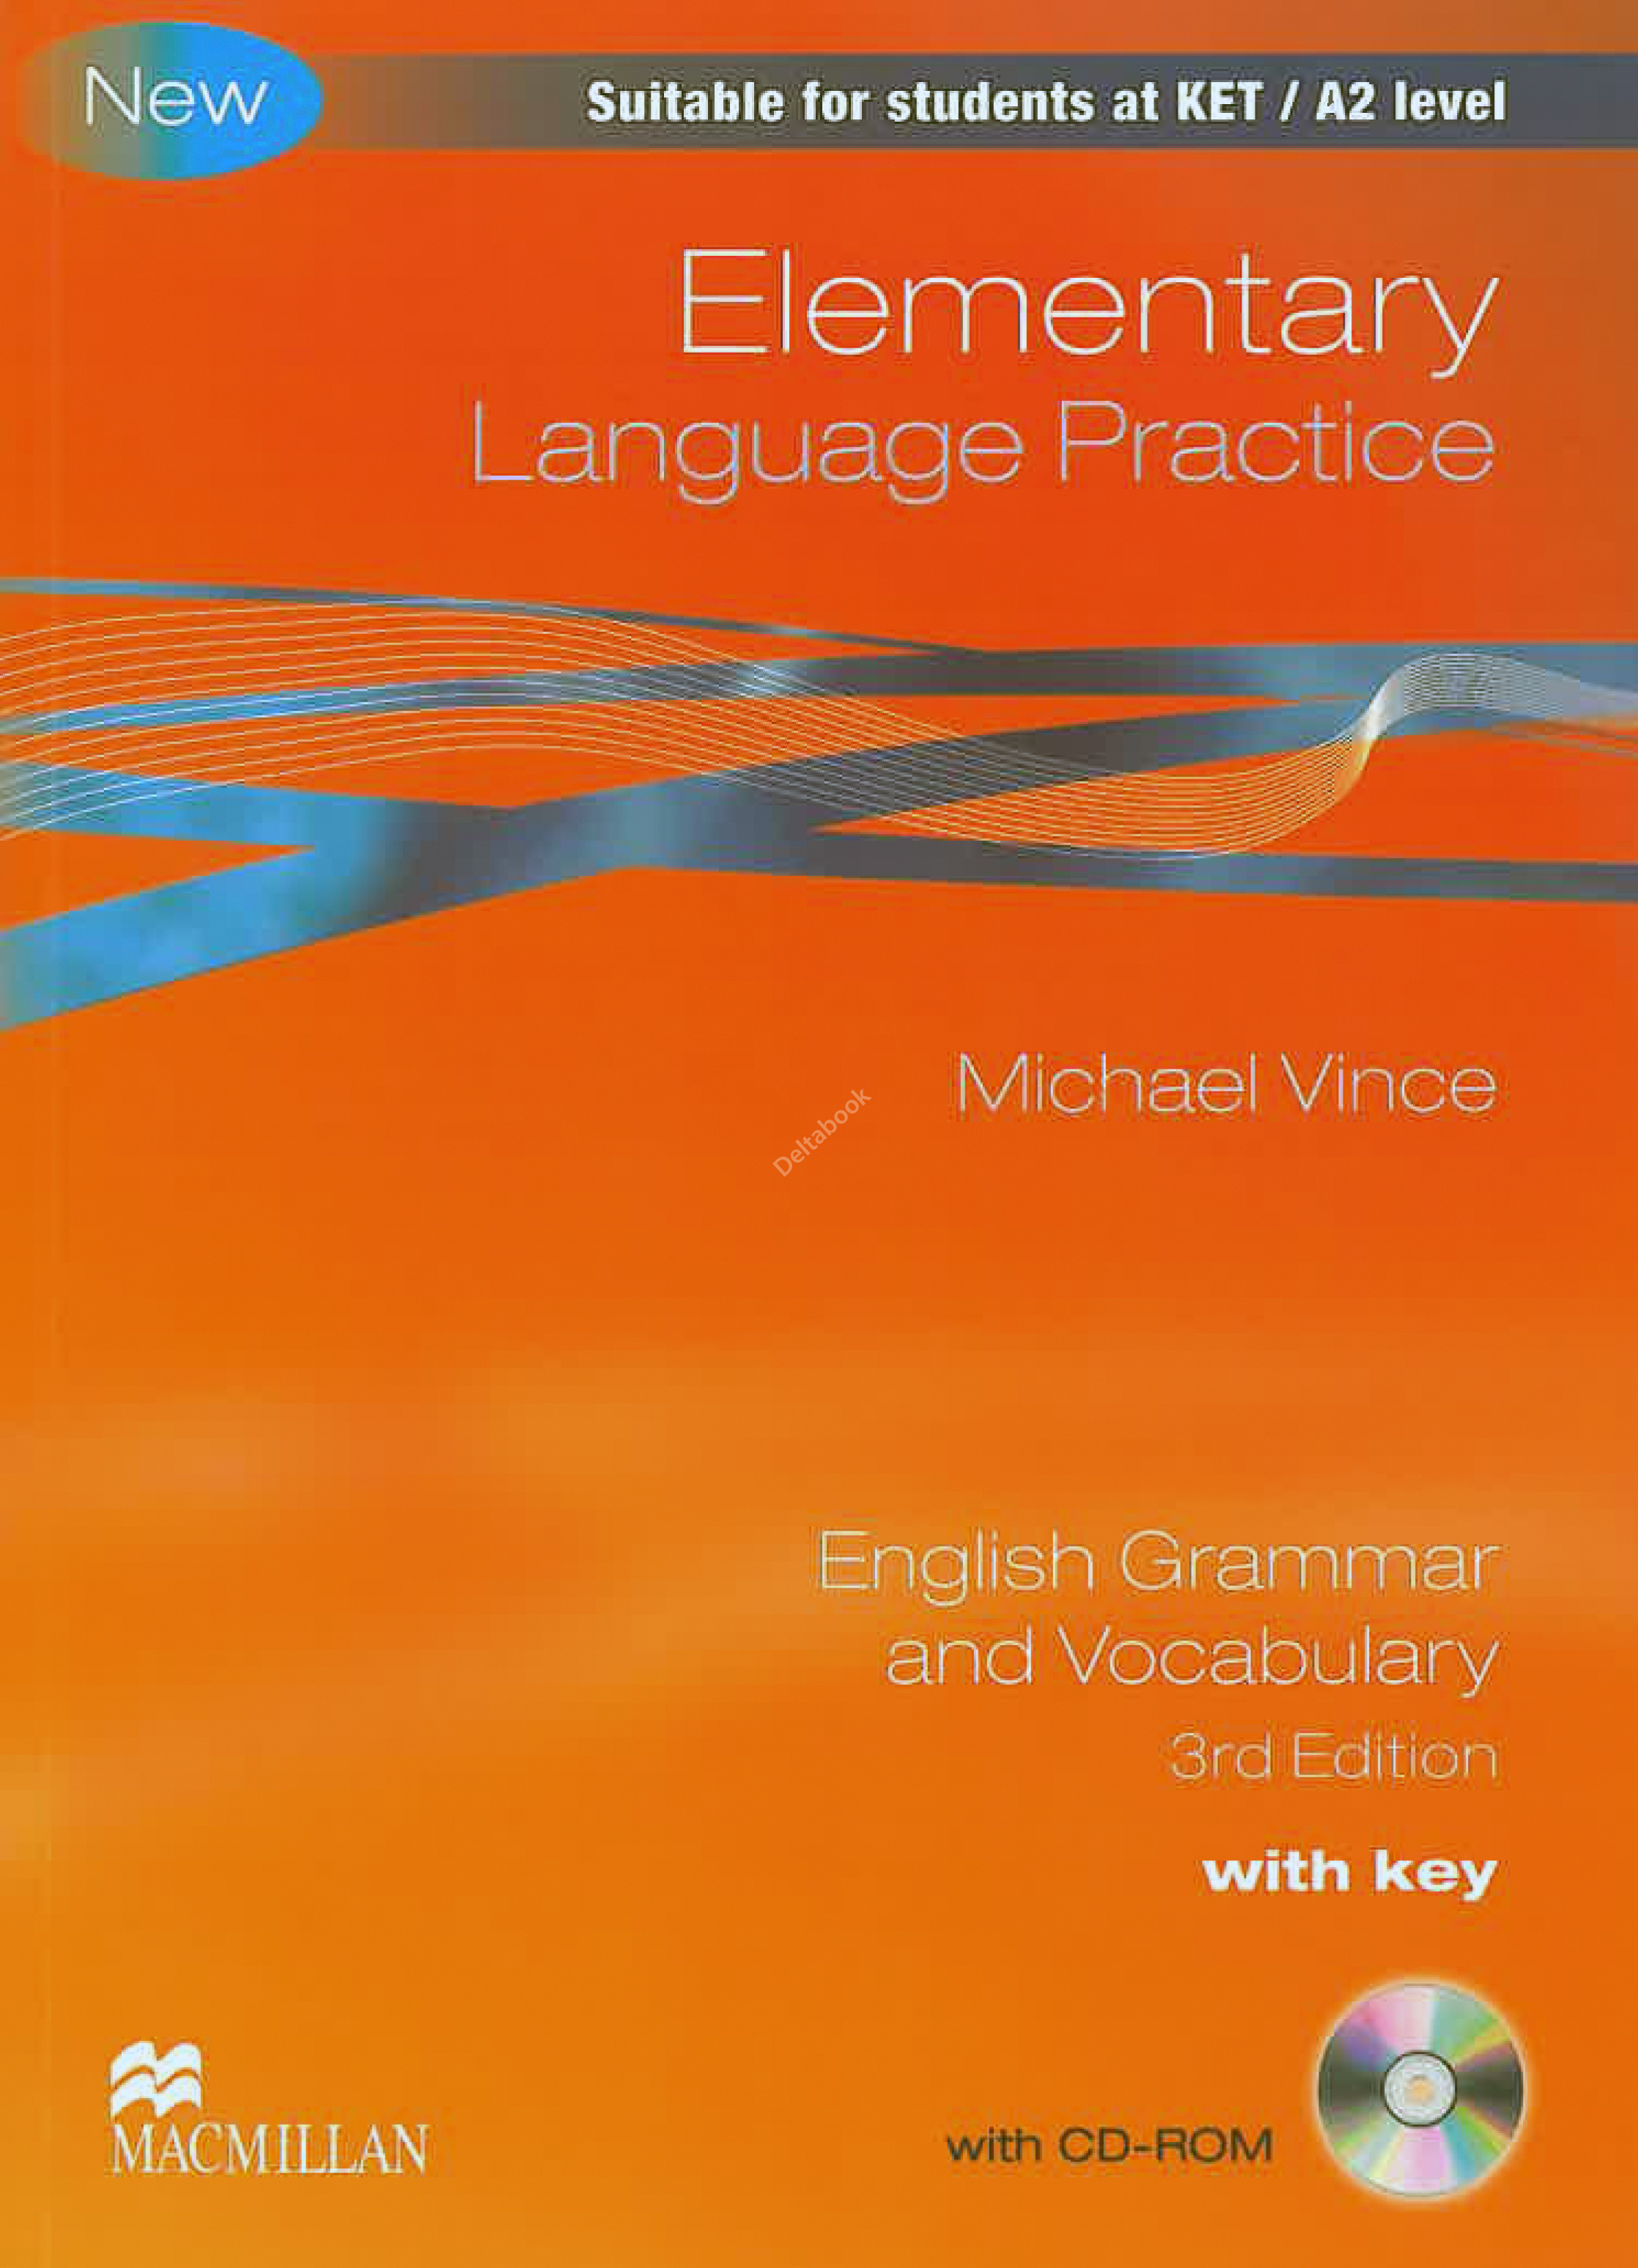 Elementary Language Practice (3rd Edition) + CD-ROM + key